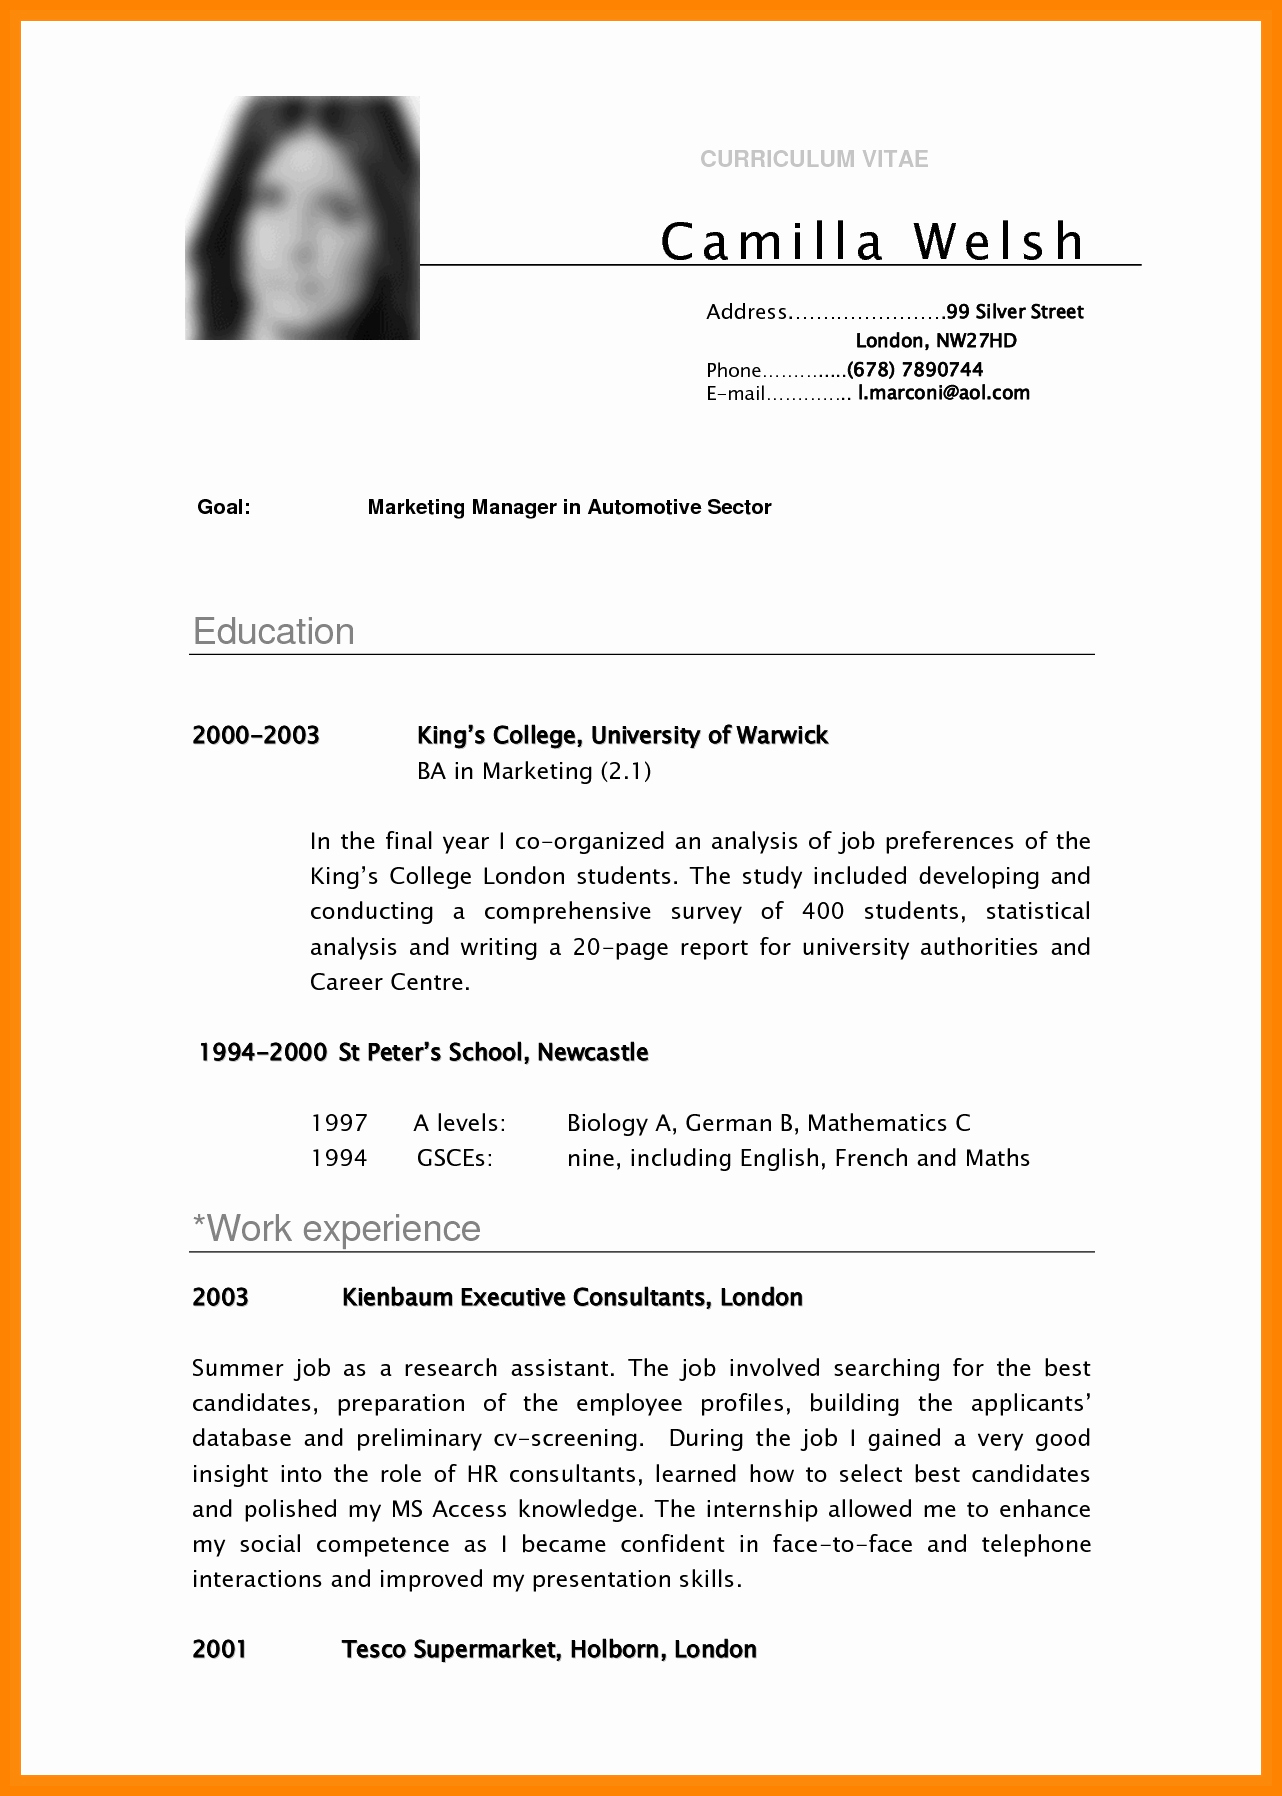 Sample Academic Curriculum Vitae Elegant 5 Cv Samples for Undergraduate Students